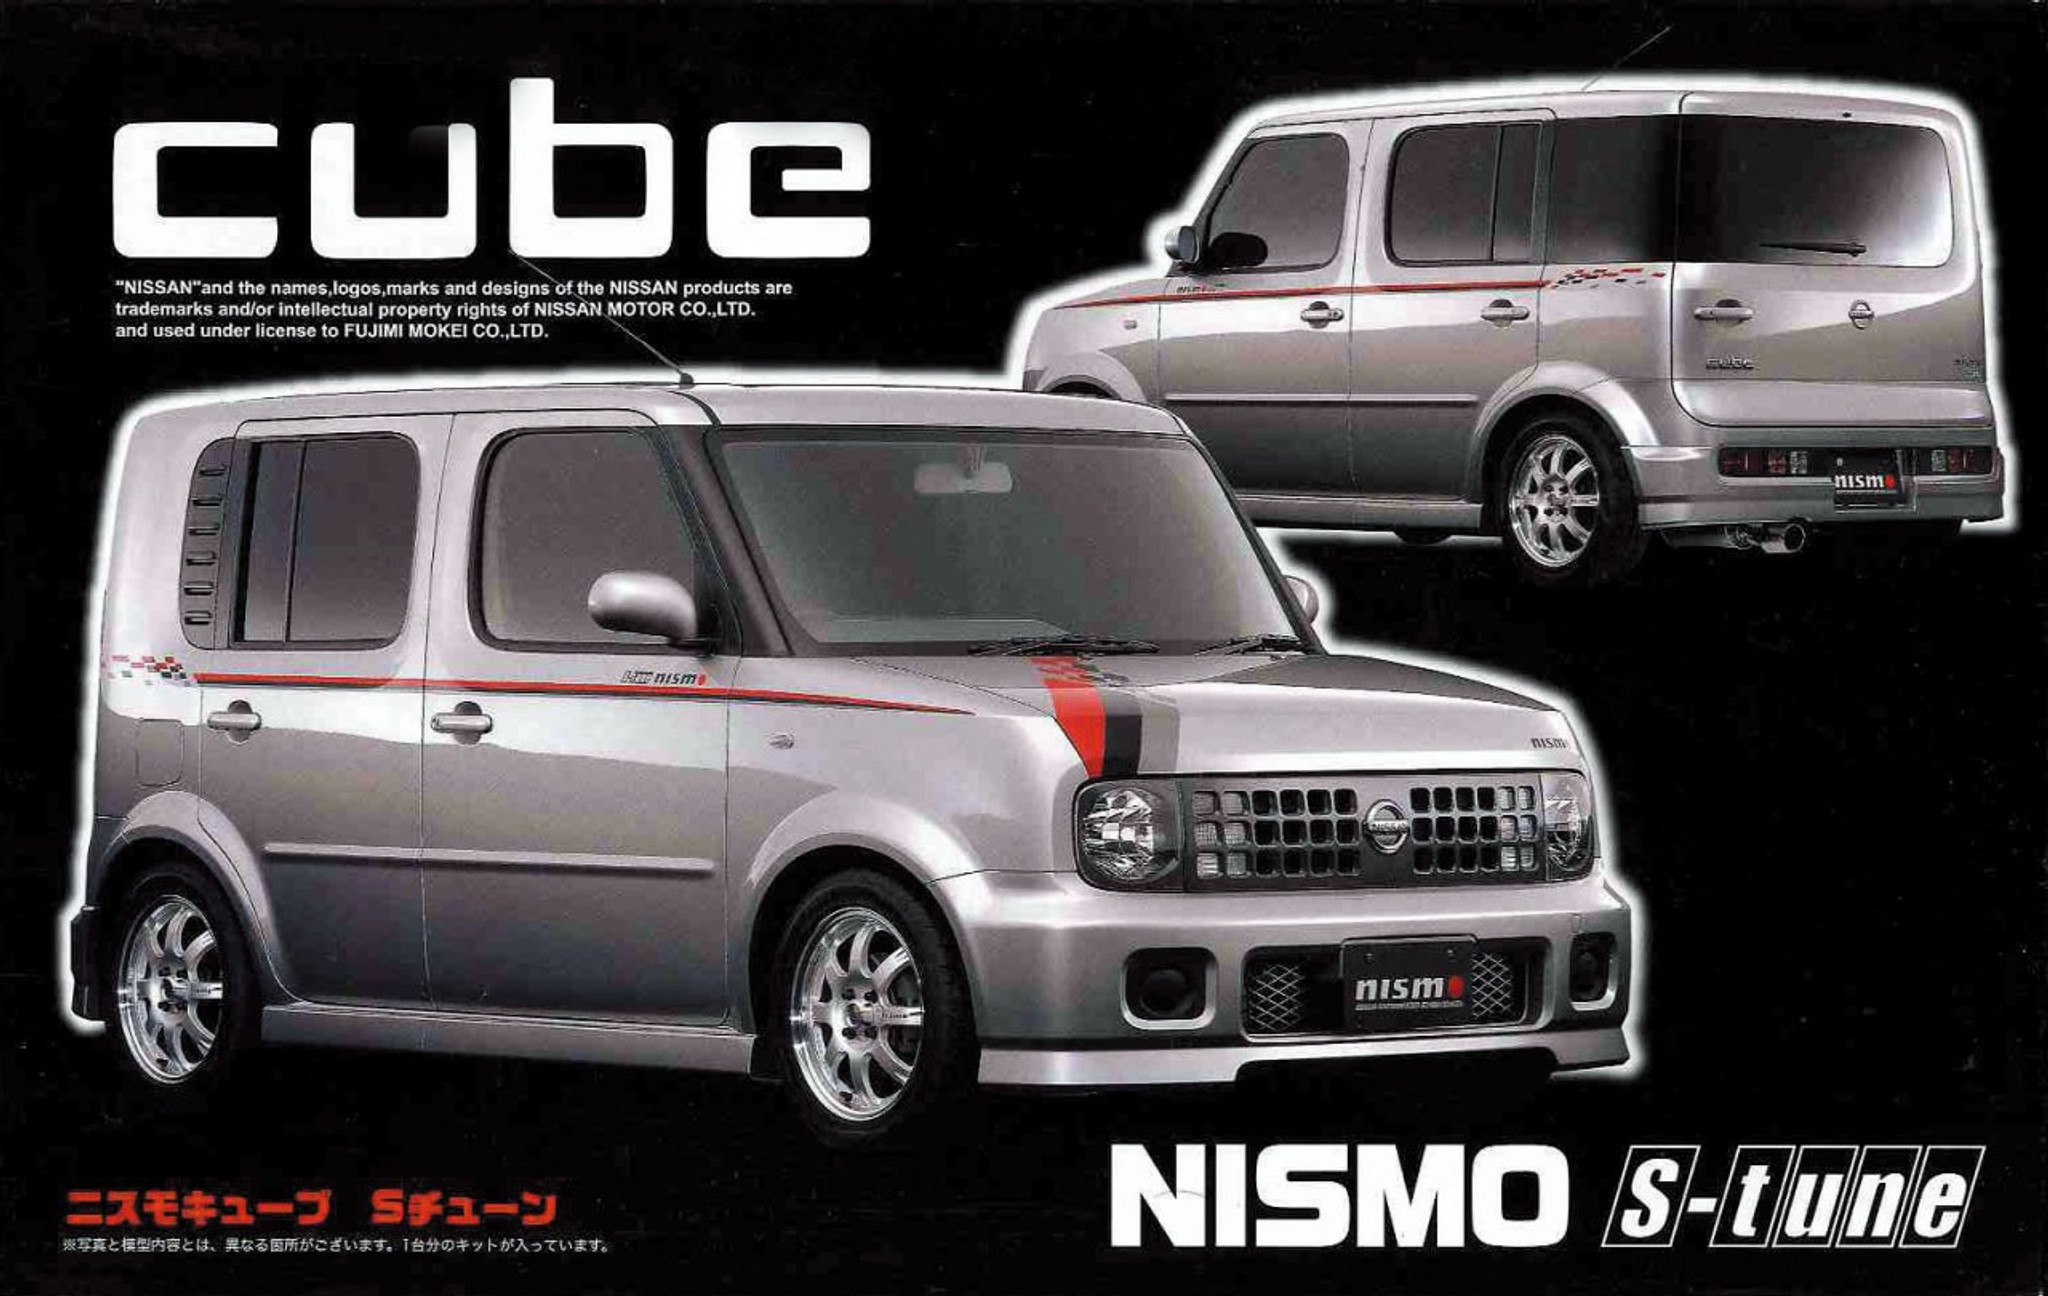 fujimi id 60 nissan cube nismo s tune 1 24 scale kit. Black Bedroom Furniture Sets. Home Design Ideas